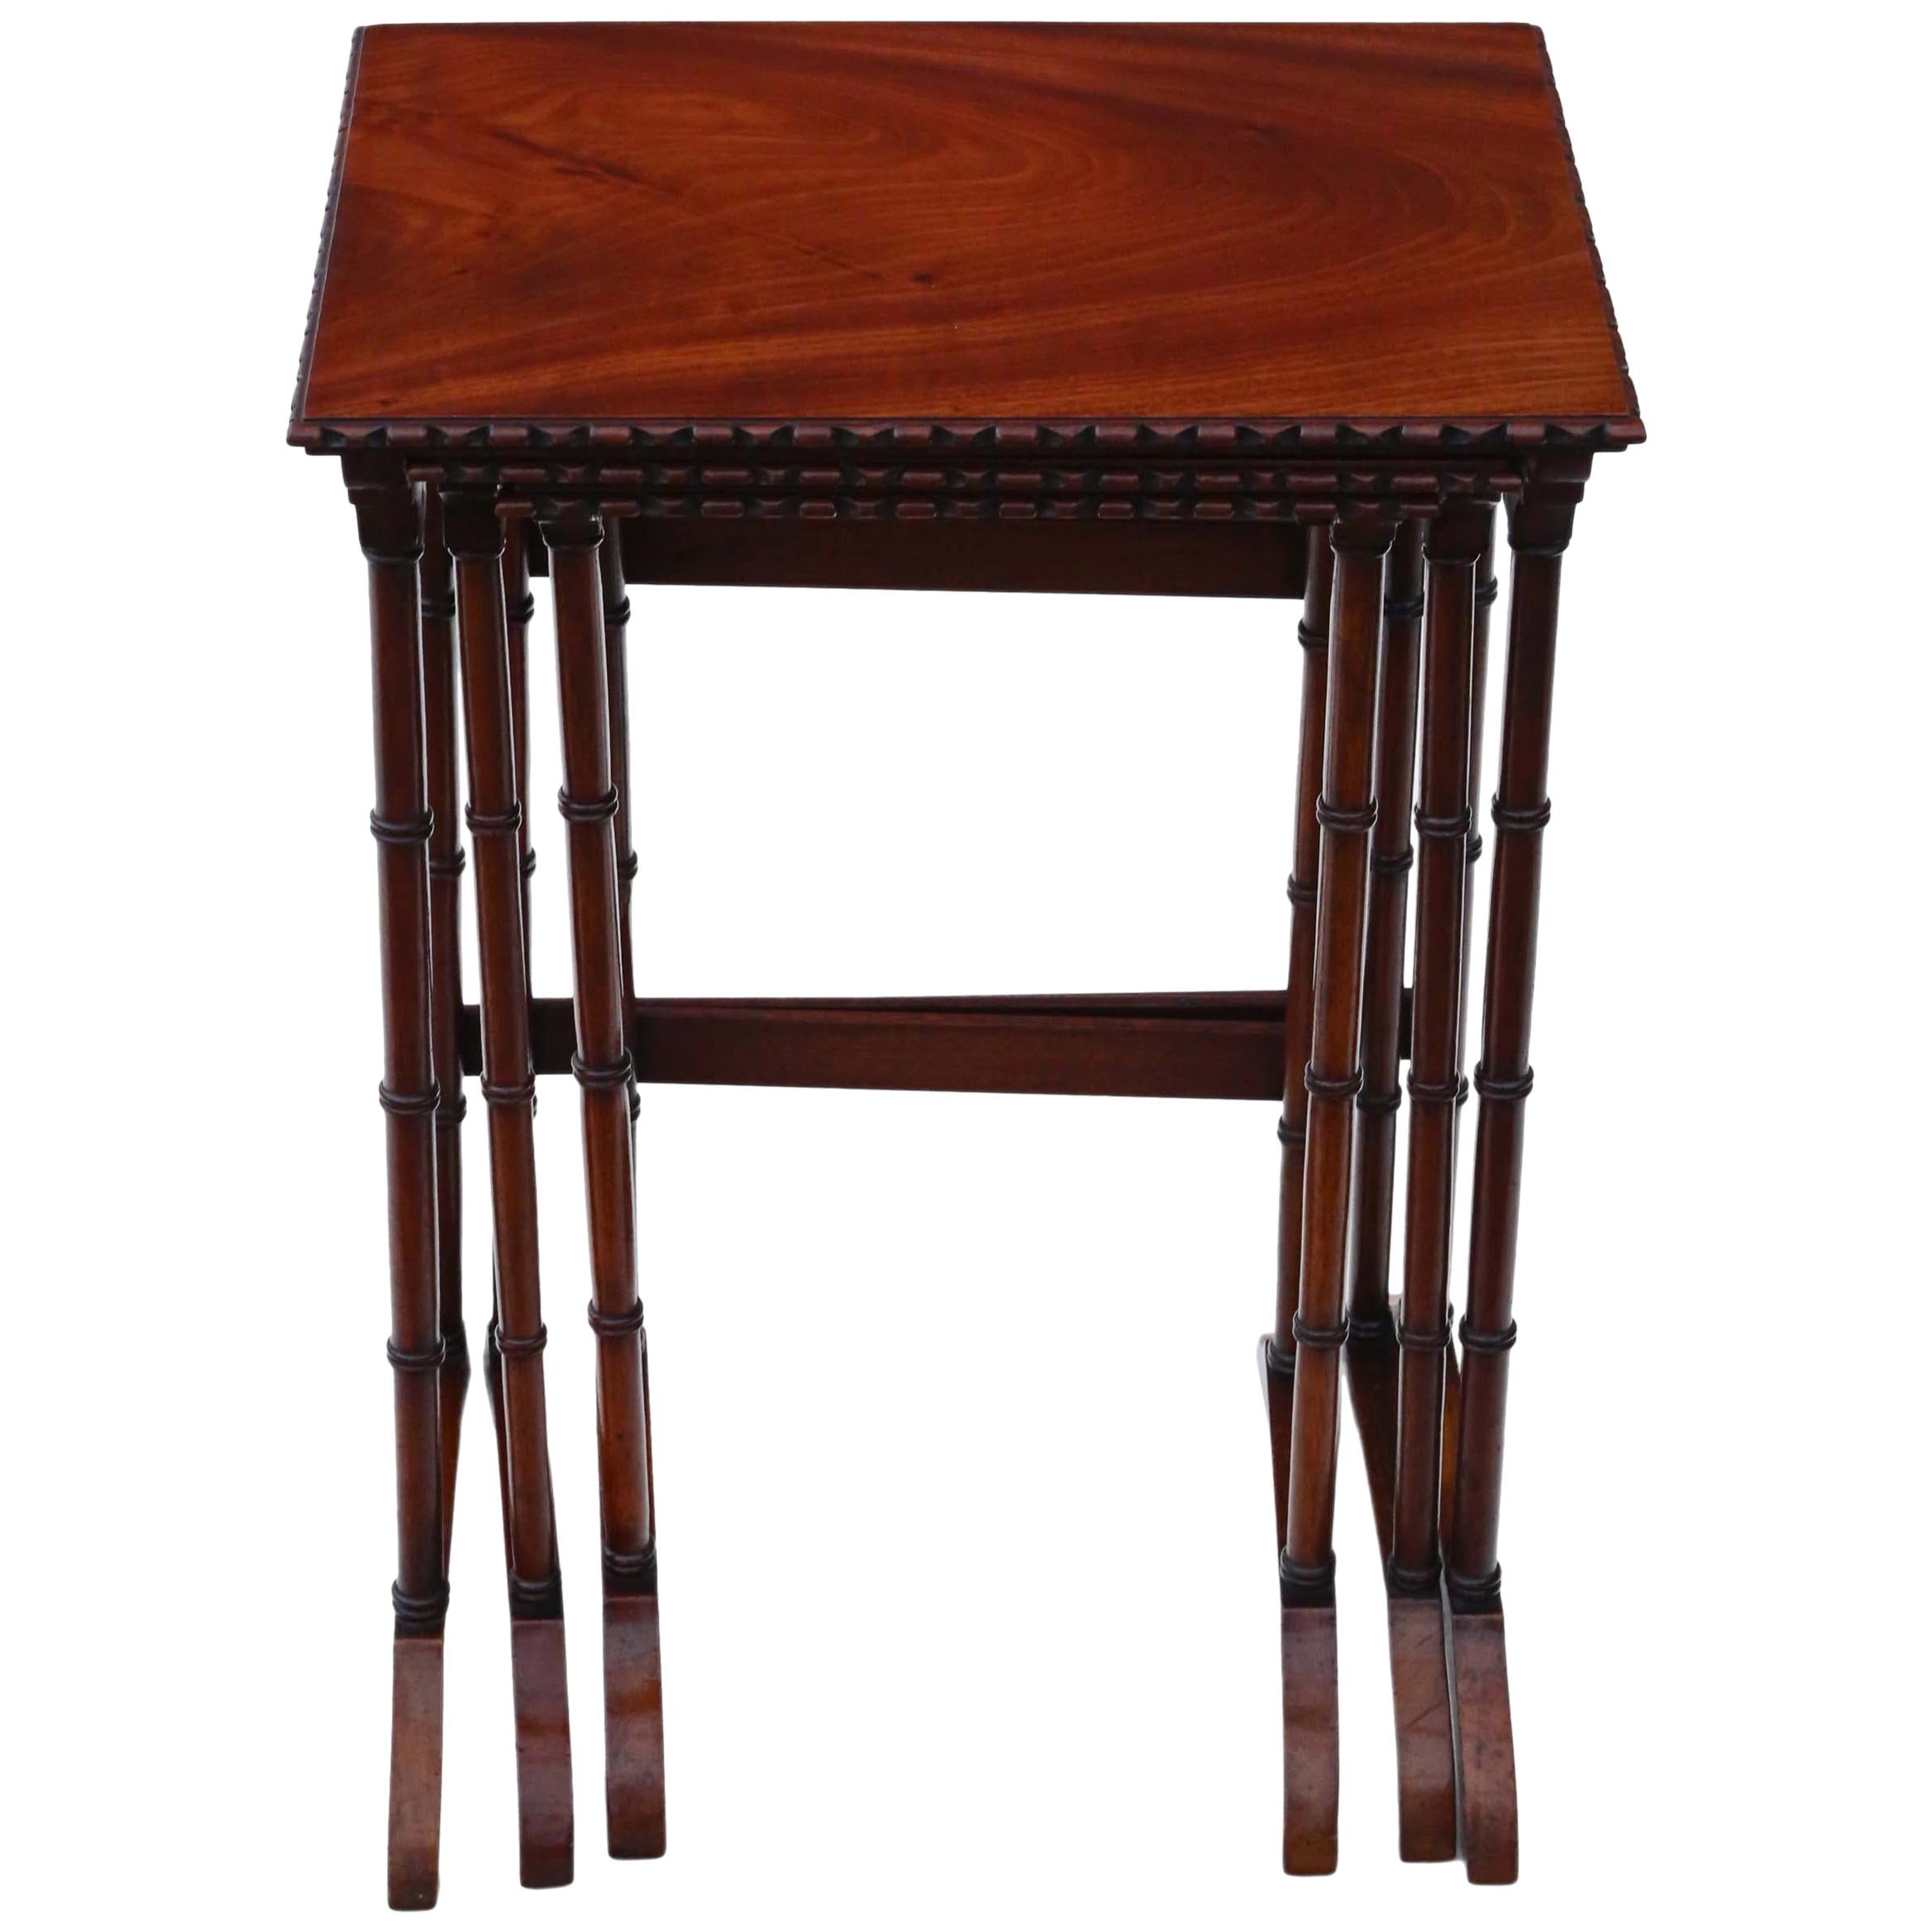 Antique Victorian Mahogany Nest of 3 Tables, C1900